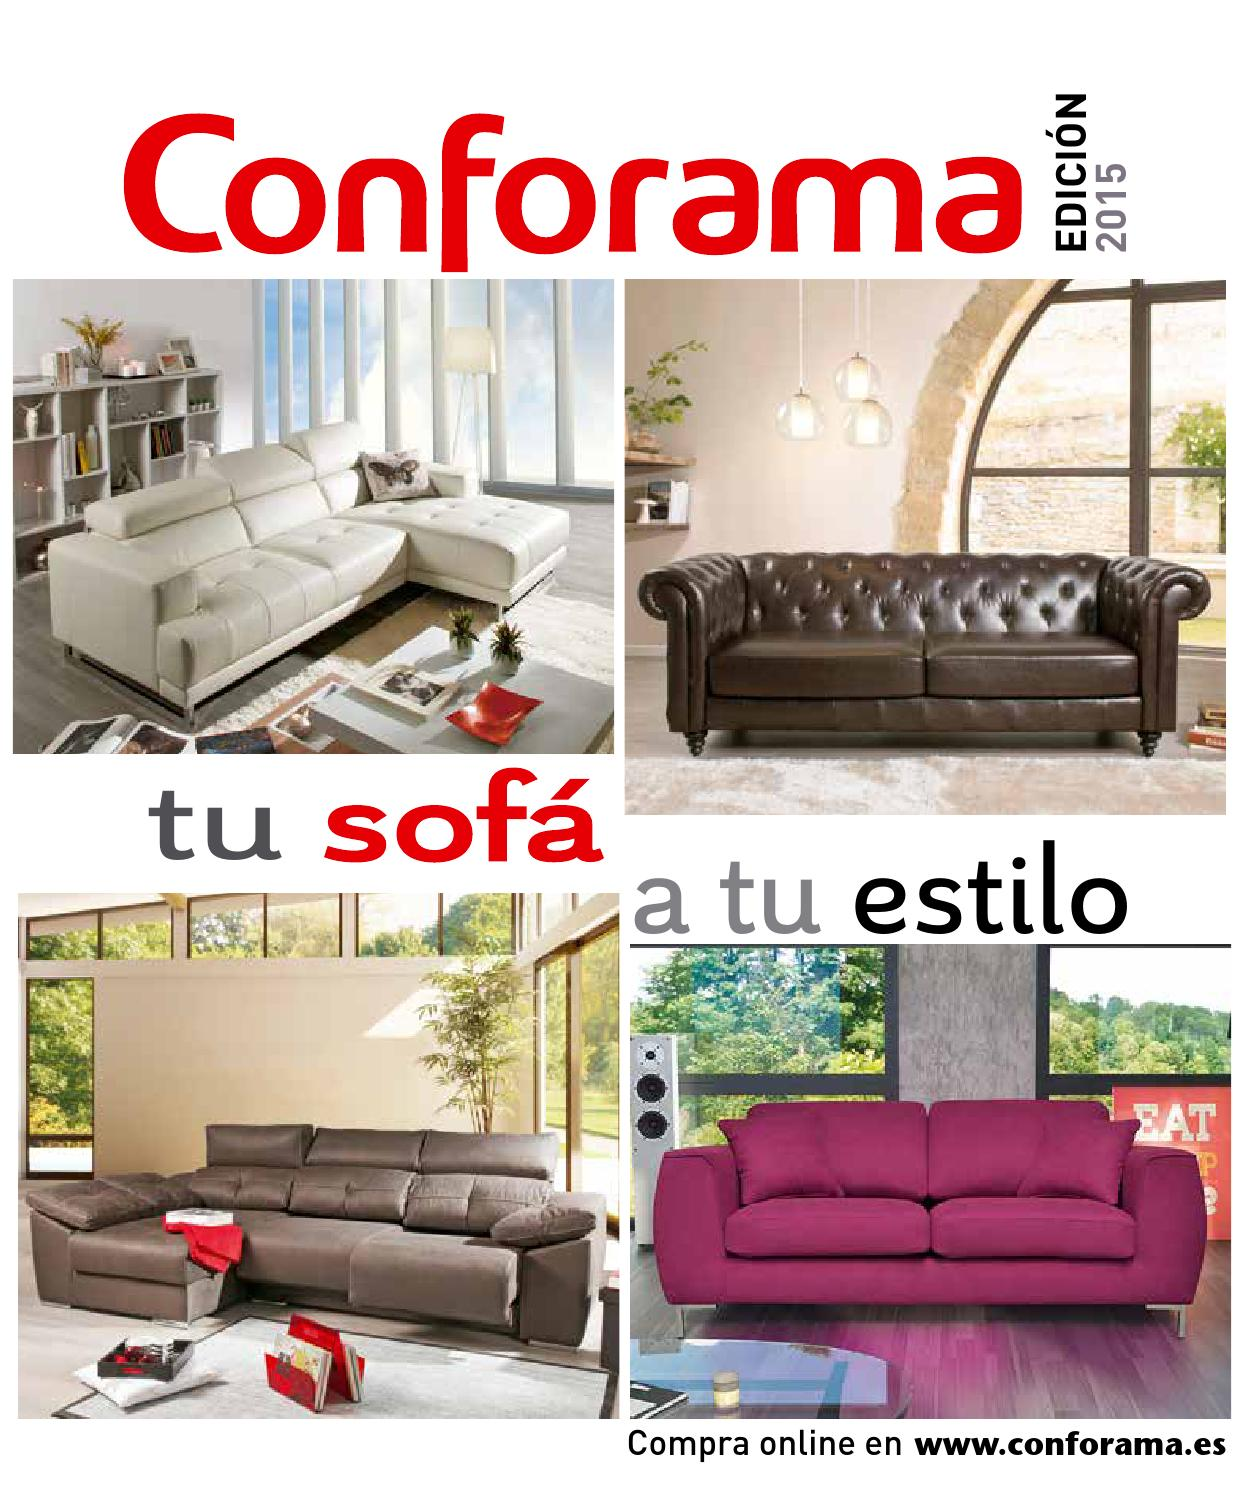 Sofa Cama Niza Conforama.Catalogos Especiales Es By Losdescuentos Issuu